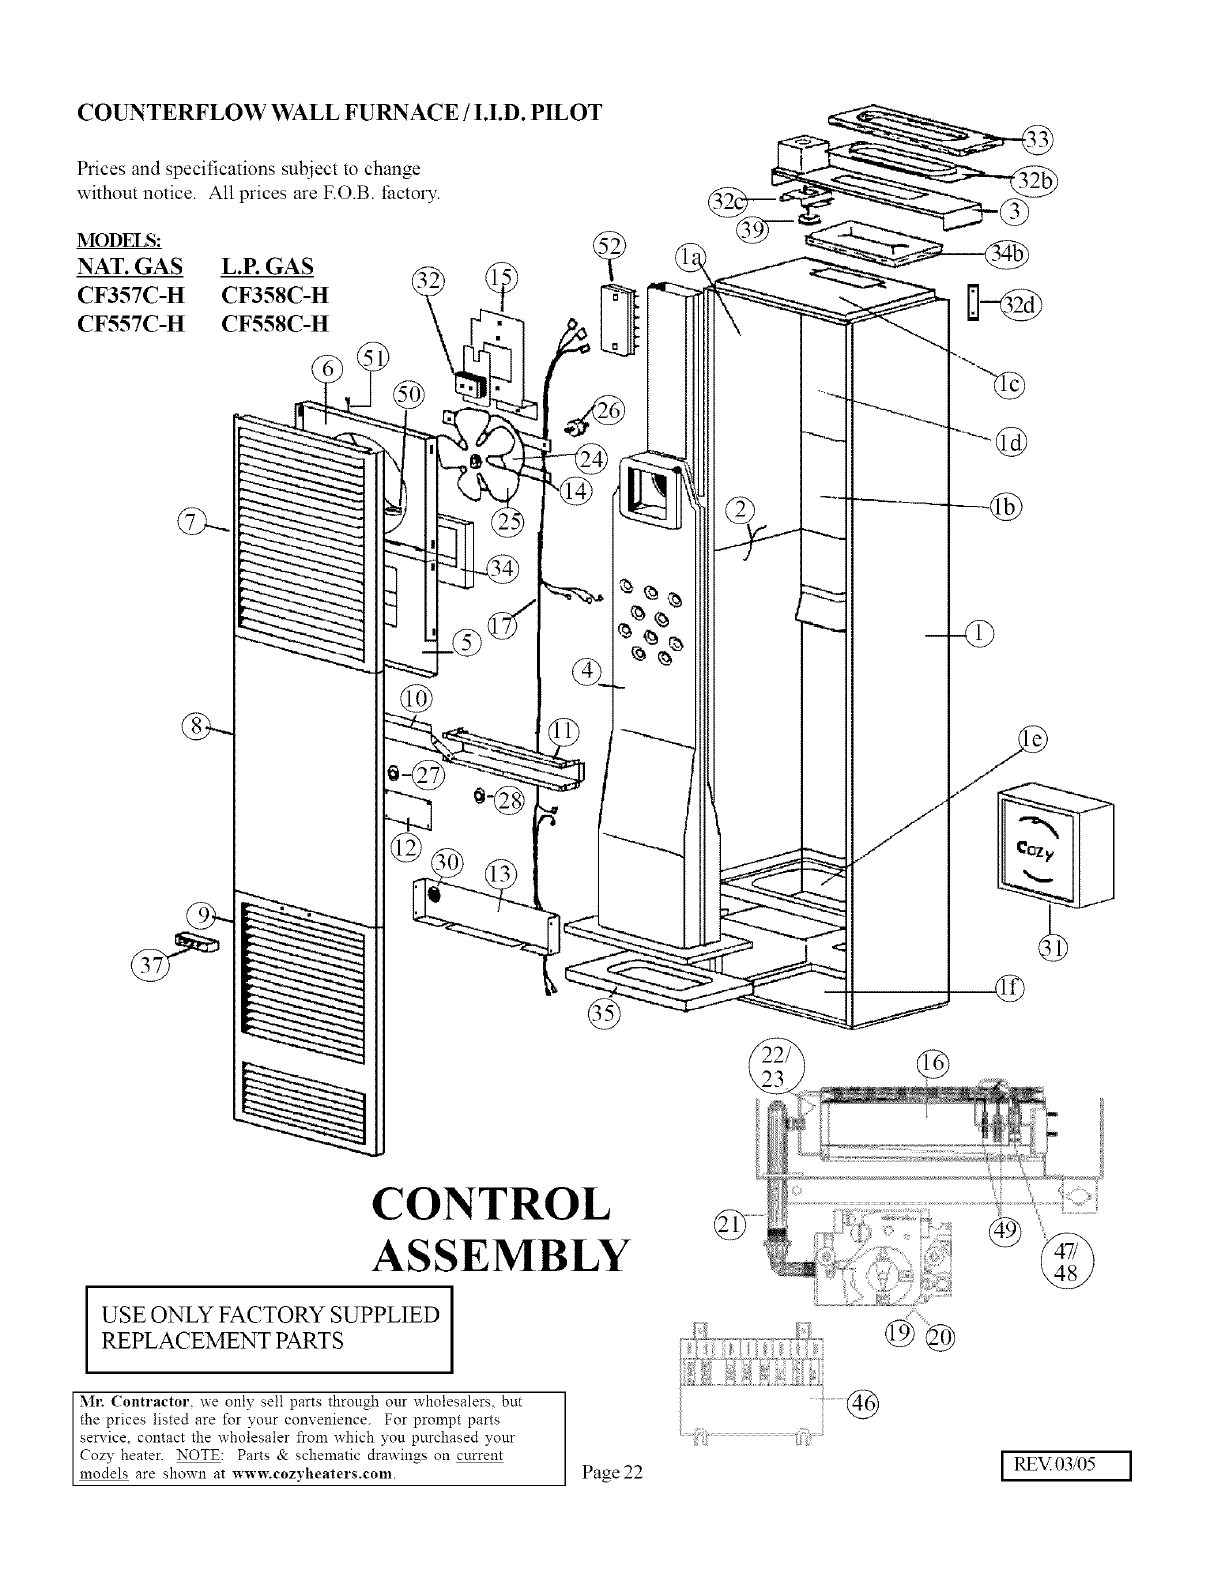 Cozy Furnace Wall Manual L0805259 Iid Wiring Diagram Counterflow Pilot